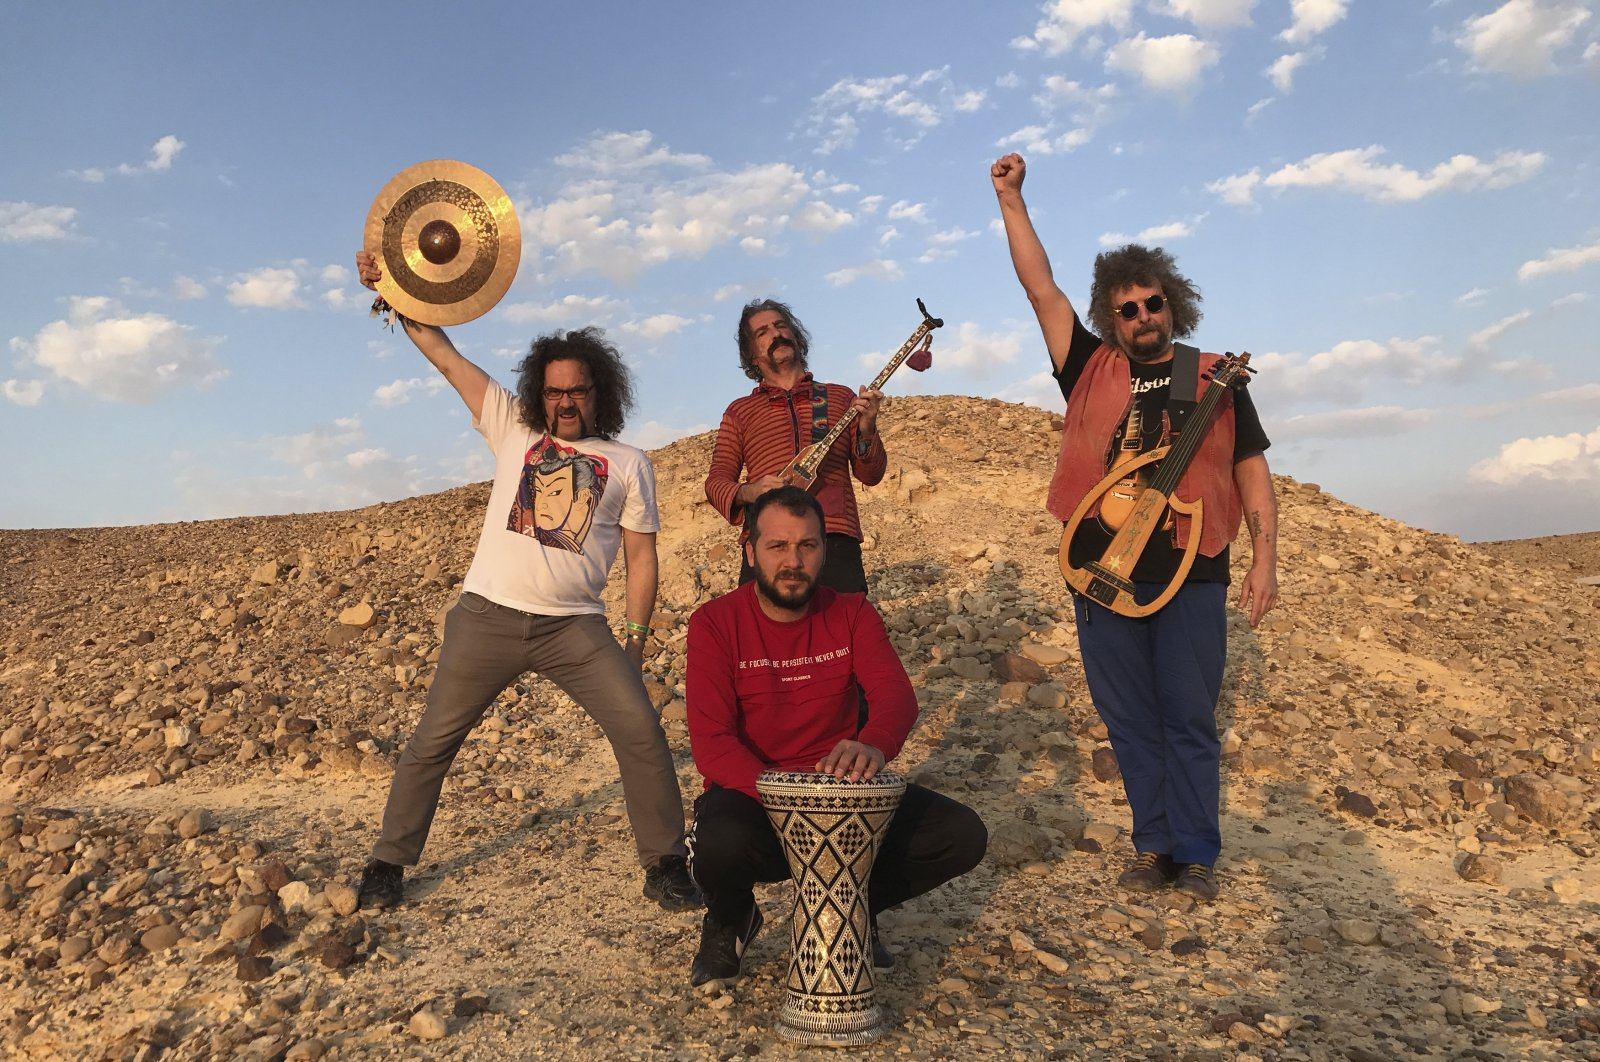 BaBa Zula combines Turkish culture with their music, posture and costumes on the stage on Sept. 7. (Courtesy of IKSV)